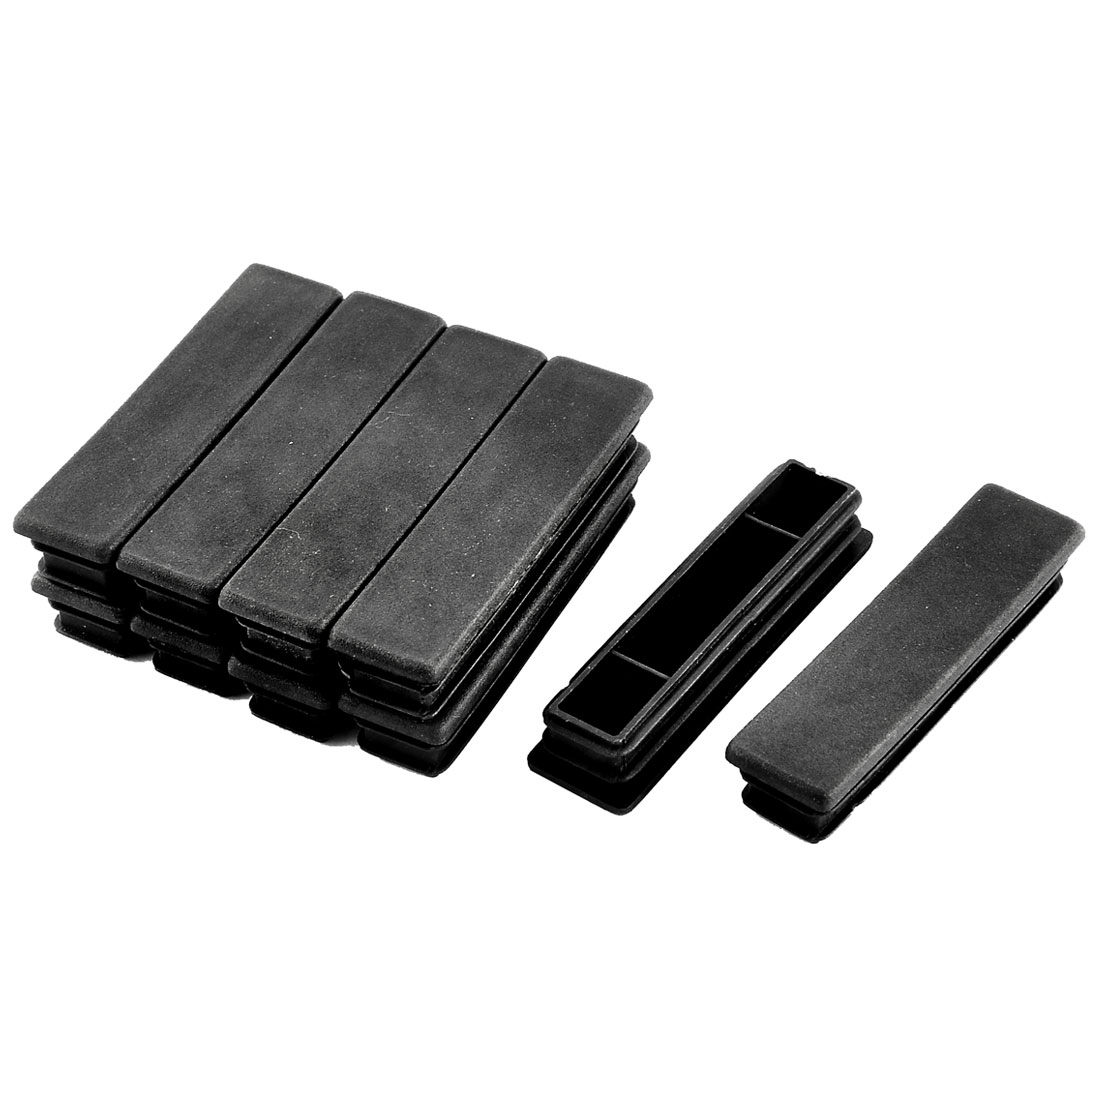 Home Plastic Rectangle Tube Inserts End Blanking Cap Black 20mm x 80mm 10 Pcs